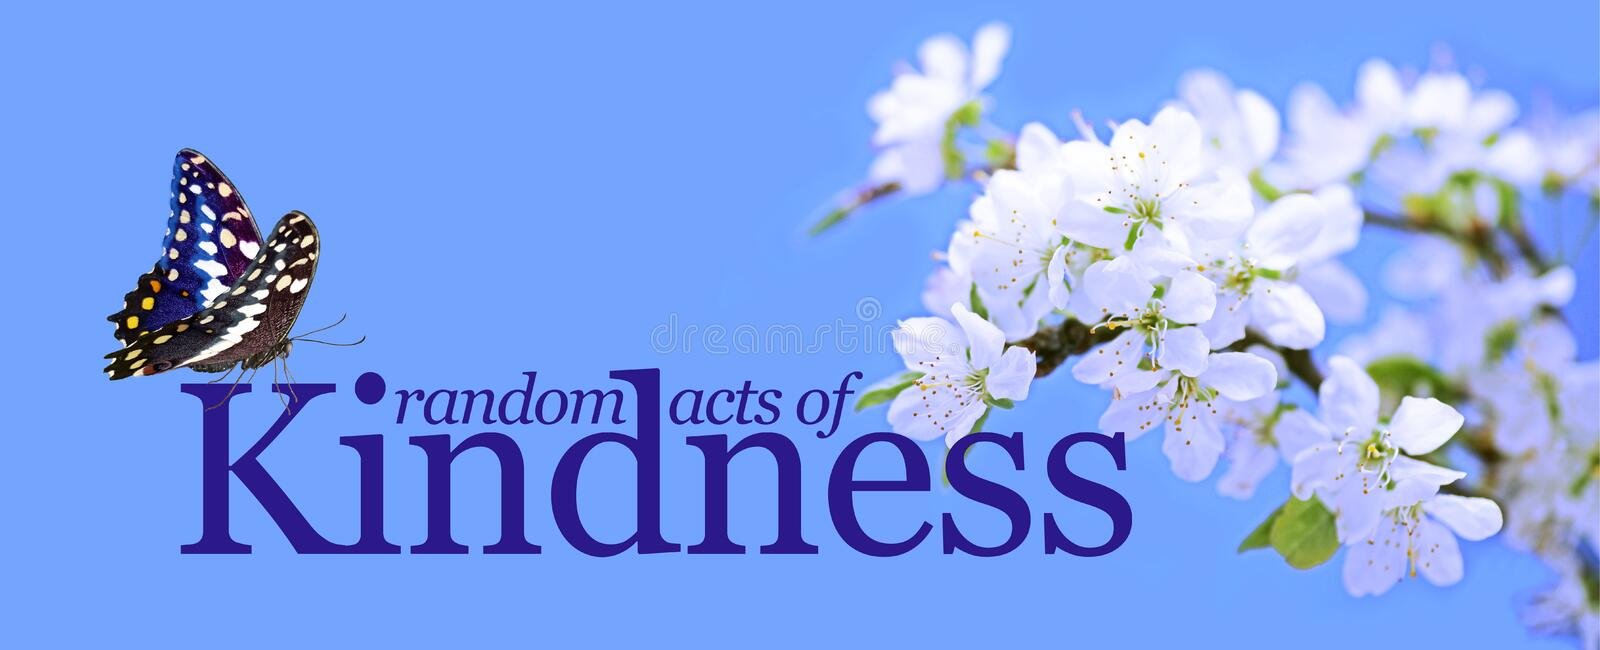 Random Acts of Kindness butterfly background stock photography